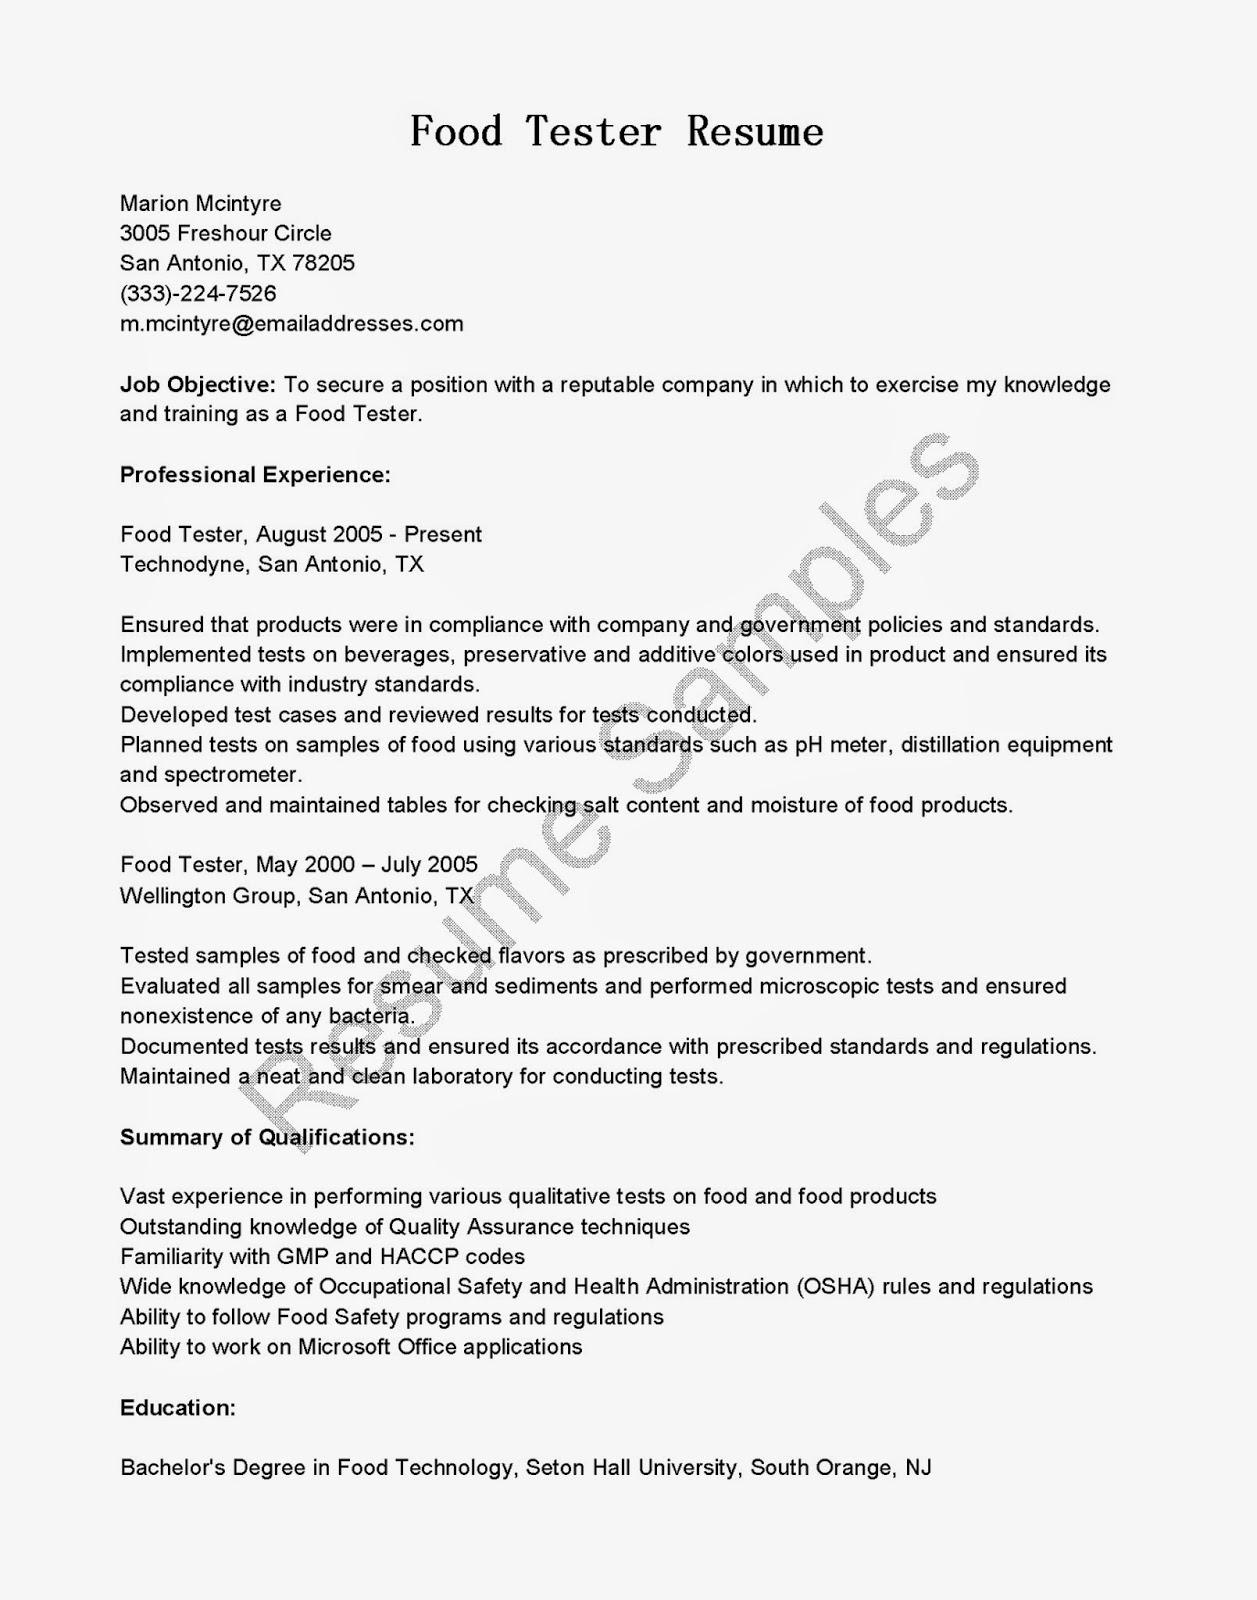 Resume Samples Food Tester Resume Sample